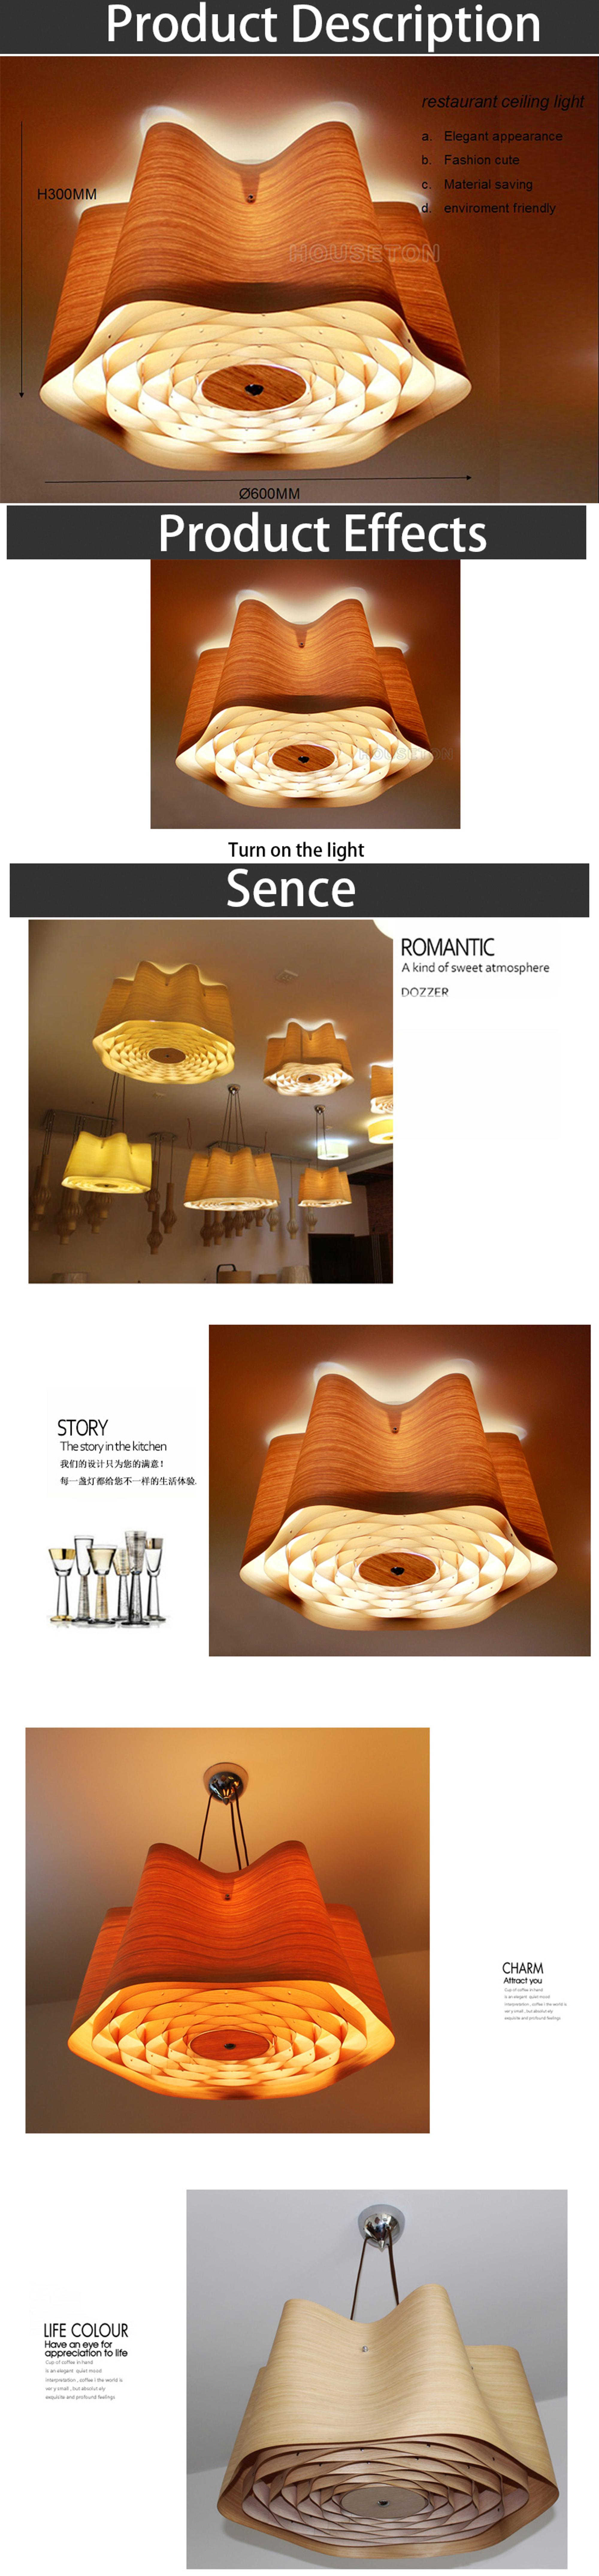 Hot selling surface home decor hotel modern wood led ceiling light